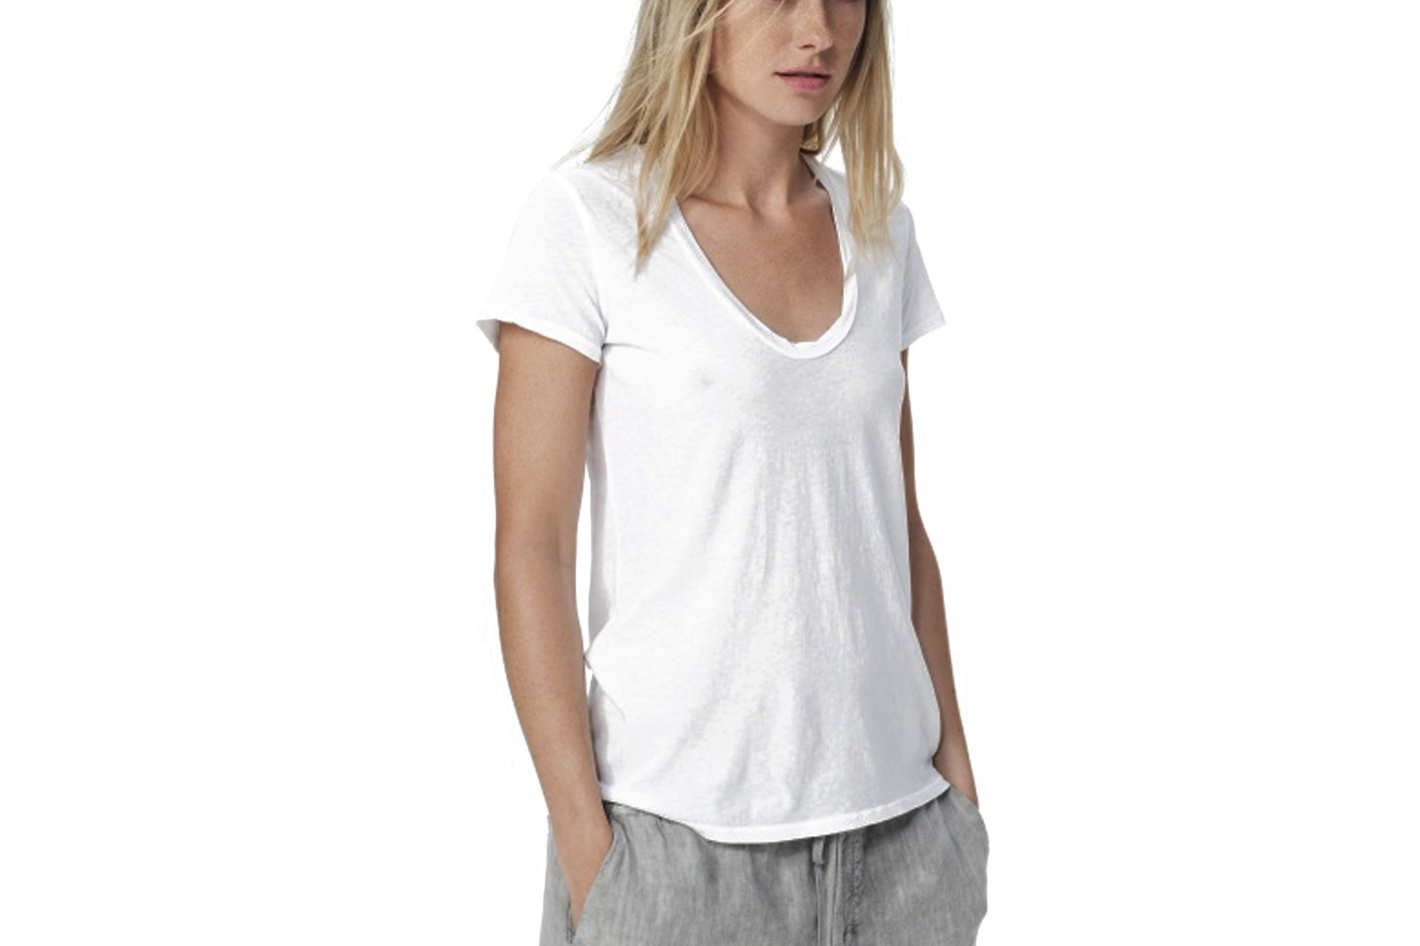 What's the Best White T-shirt? | Shirts, White t shirts and What's the